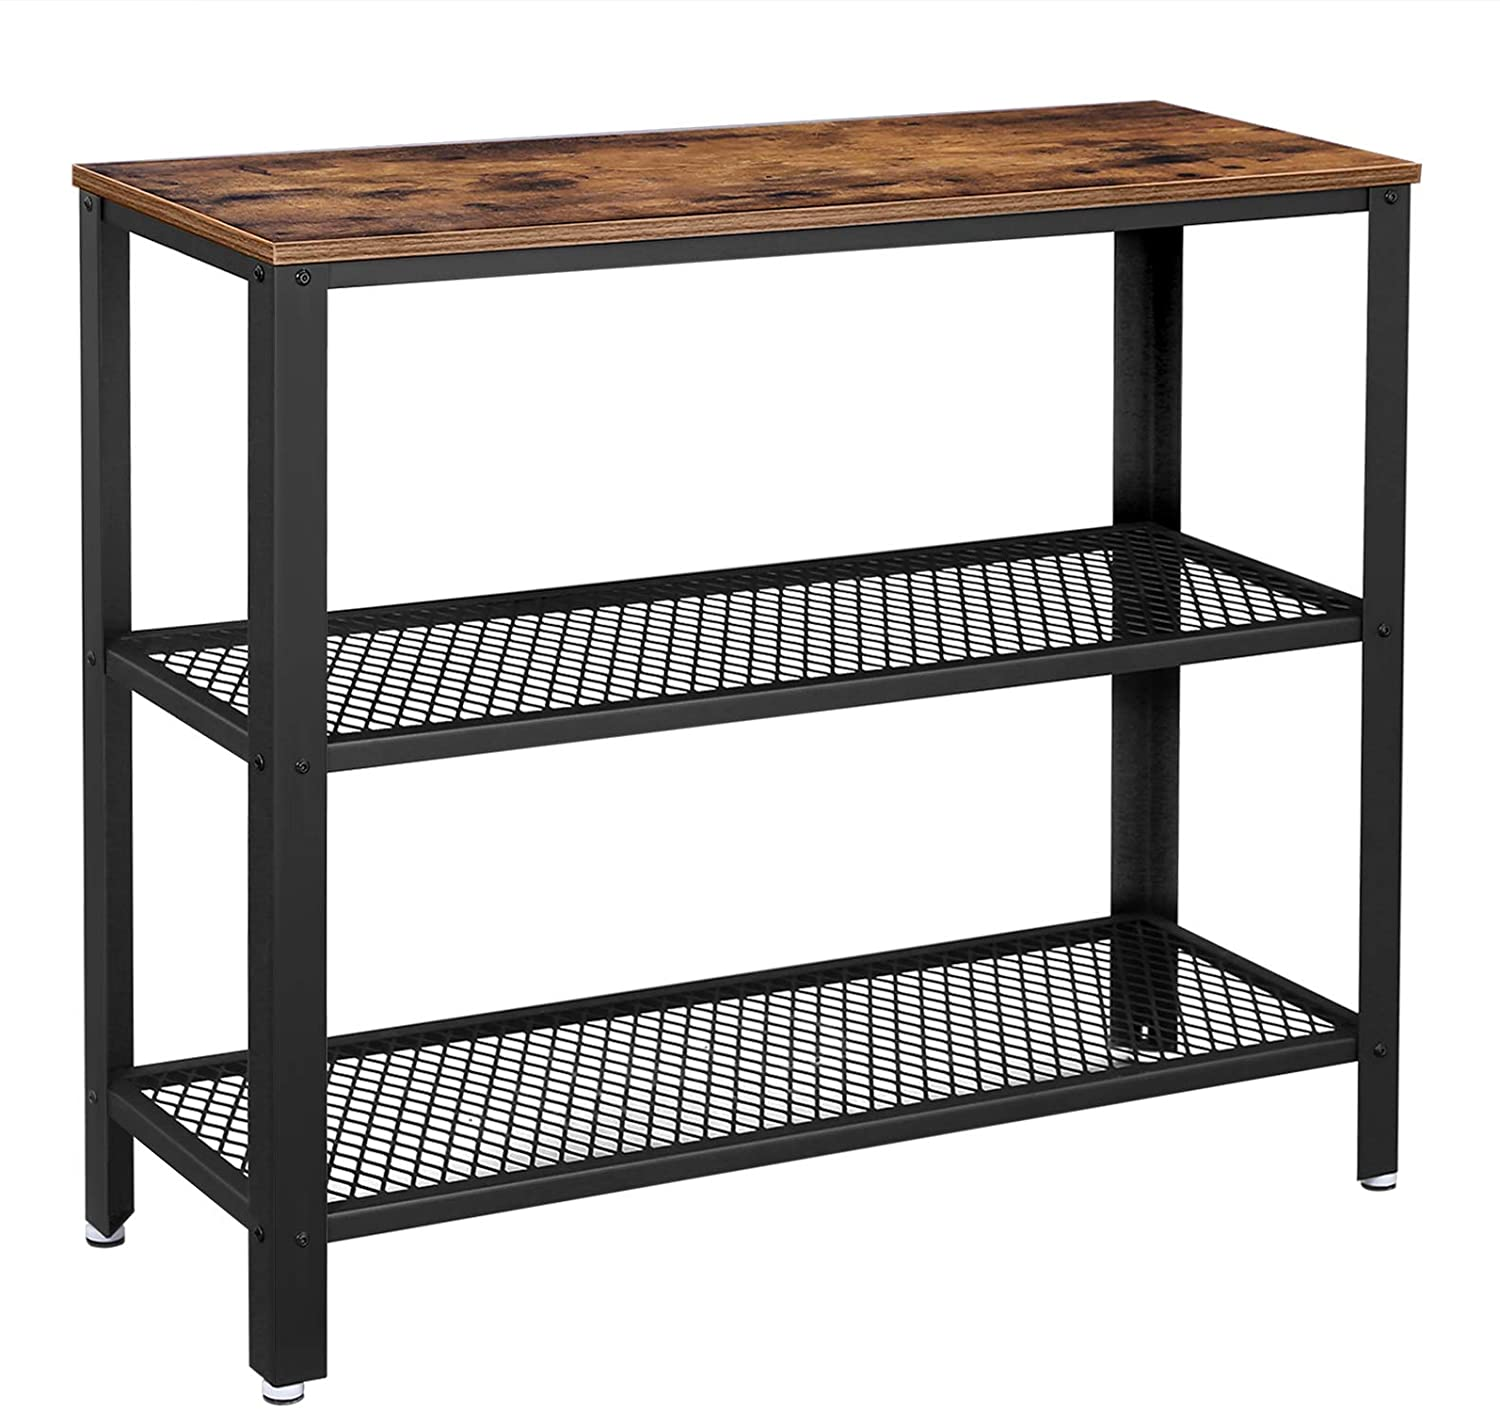 Enjoy fast, free nationwide shipping!  Family owned and operated, HawkinsWoodshop.com is your one stop shop for affordable furniture.  Shop HawkinsWoodshop.com for solid wood & metal modern, traditional, contemporary, industrial, custom, rustic, and farmhouse furniture including our Ryan 2 Mesh Shelves Industrial Console Table.